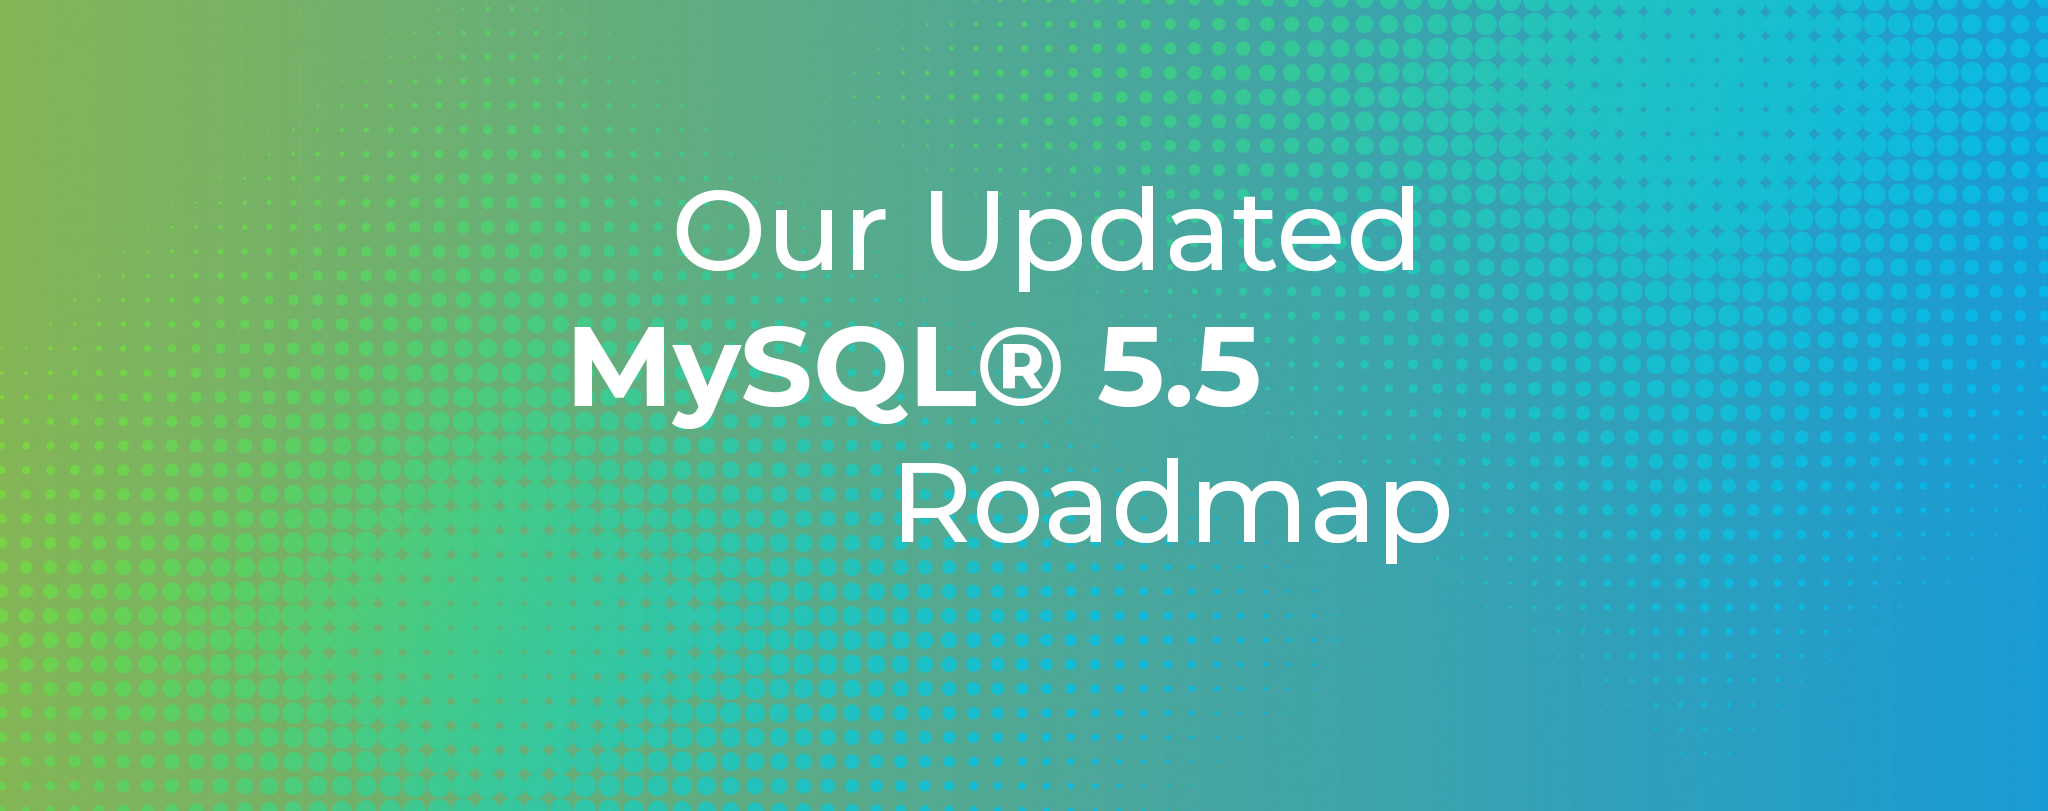 Our Updated MySQL 5.5 Roadmap